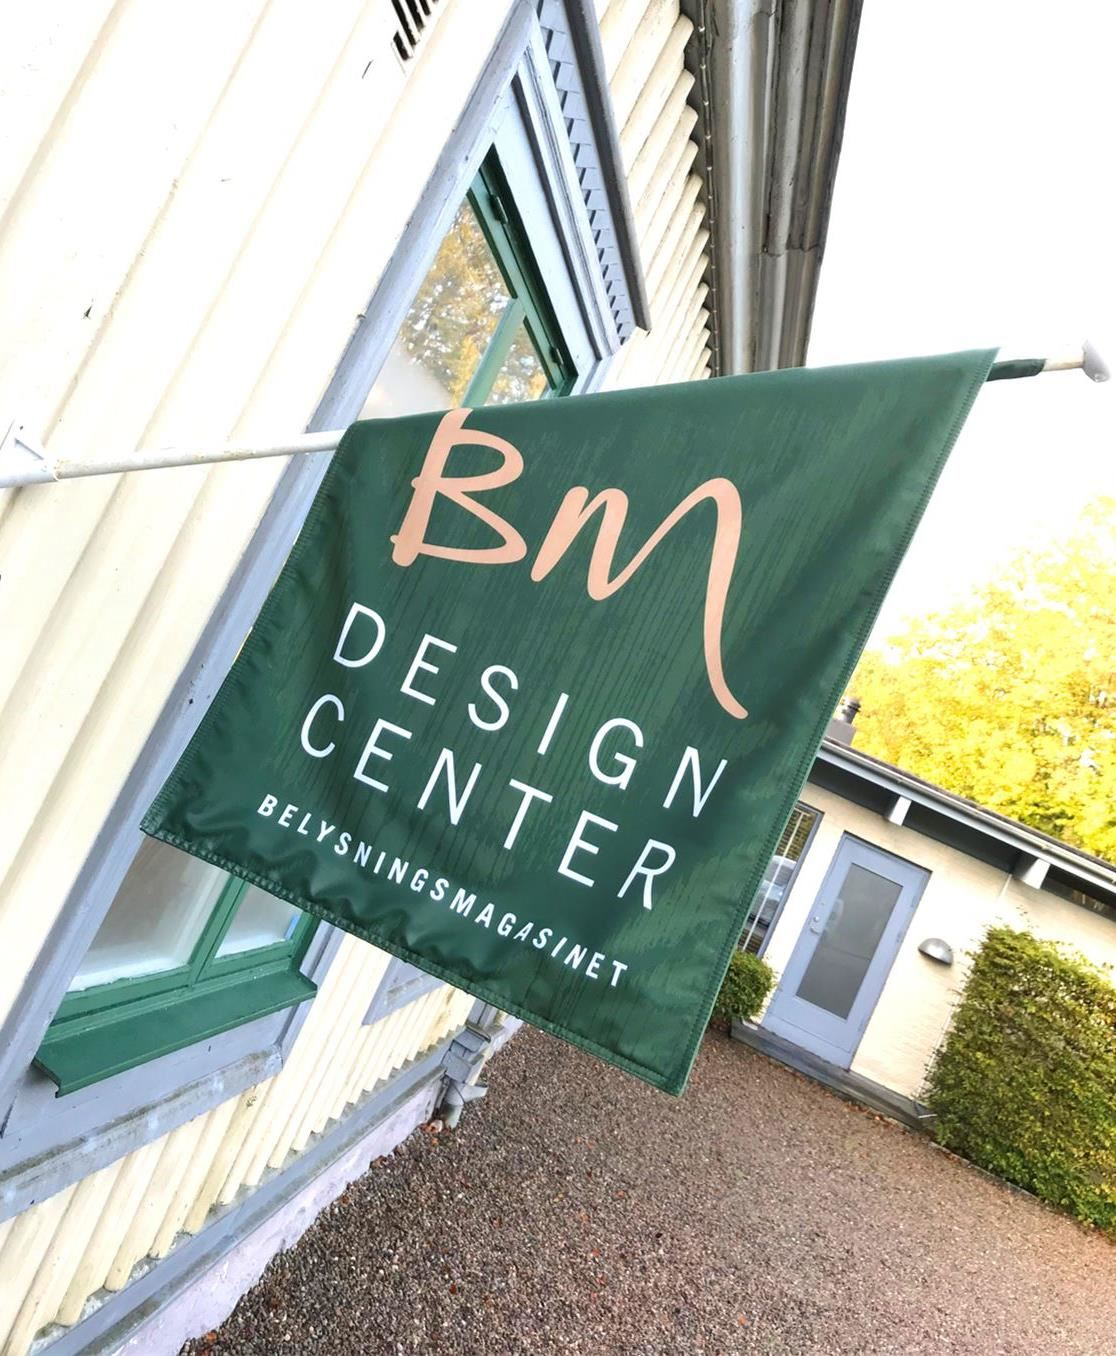 BM Design Center in Svängsta